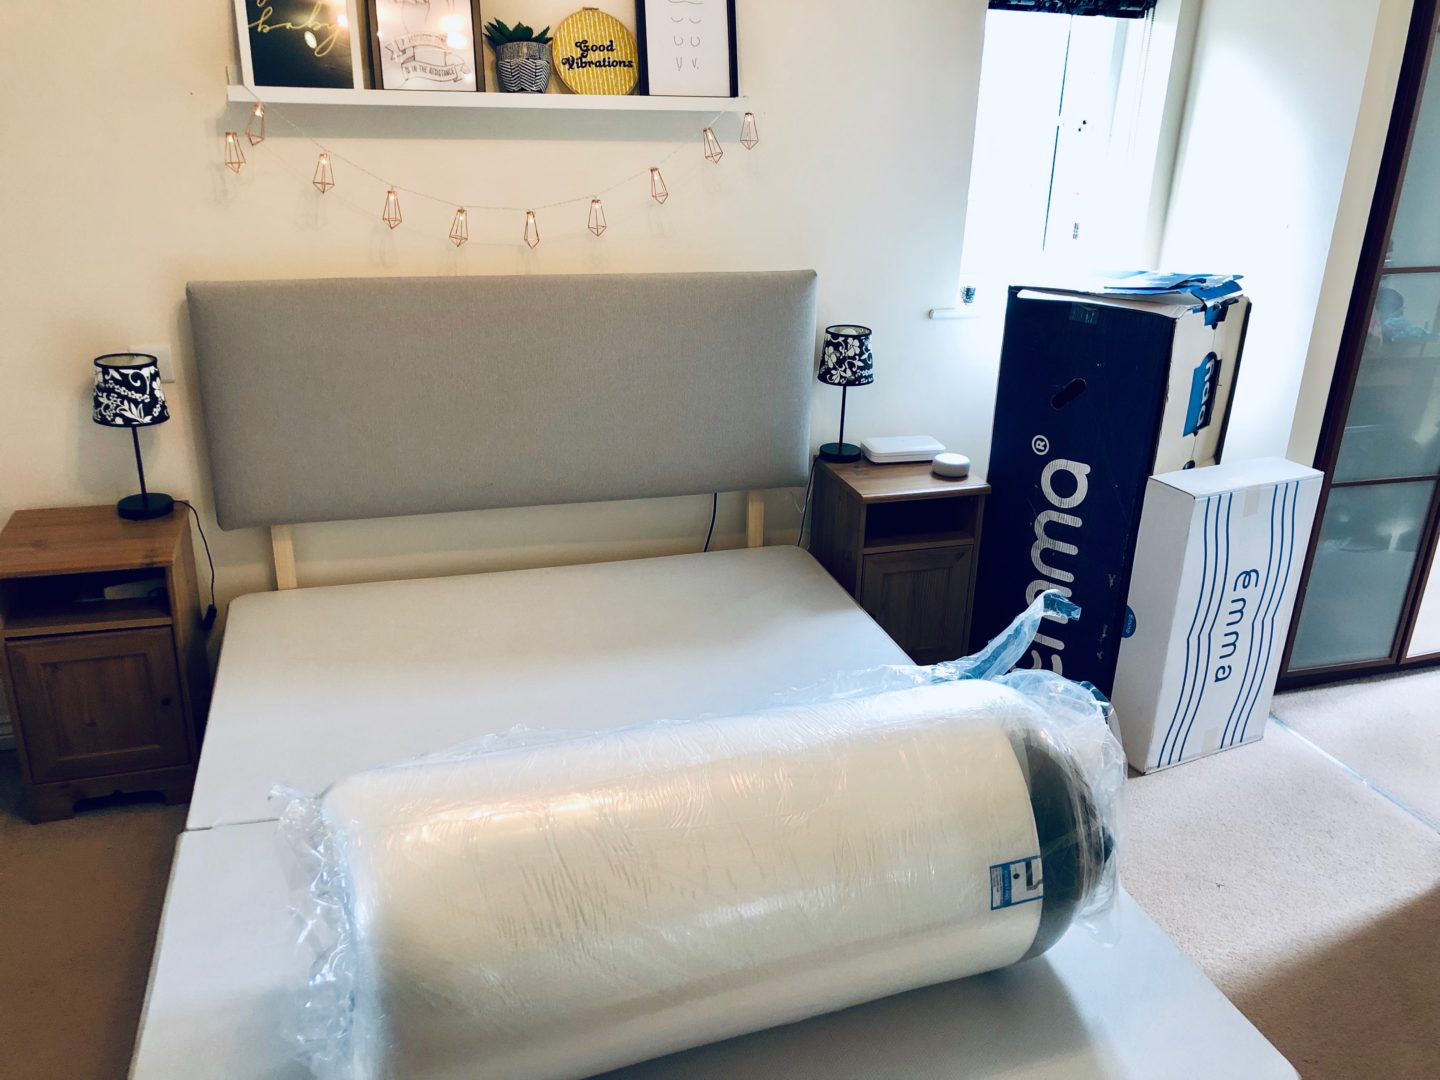 A bed with the Emma Mattress taken out of its box but still in its plastic wrapping.